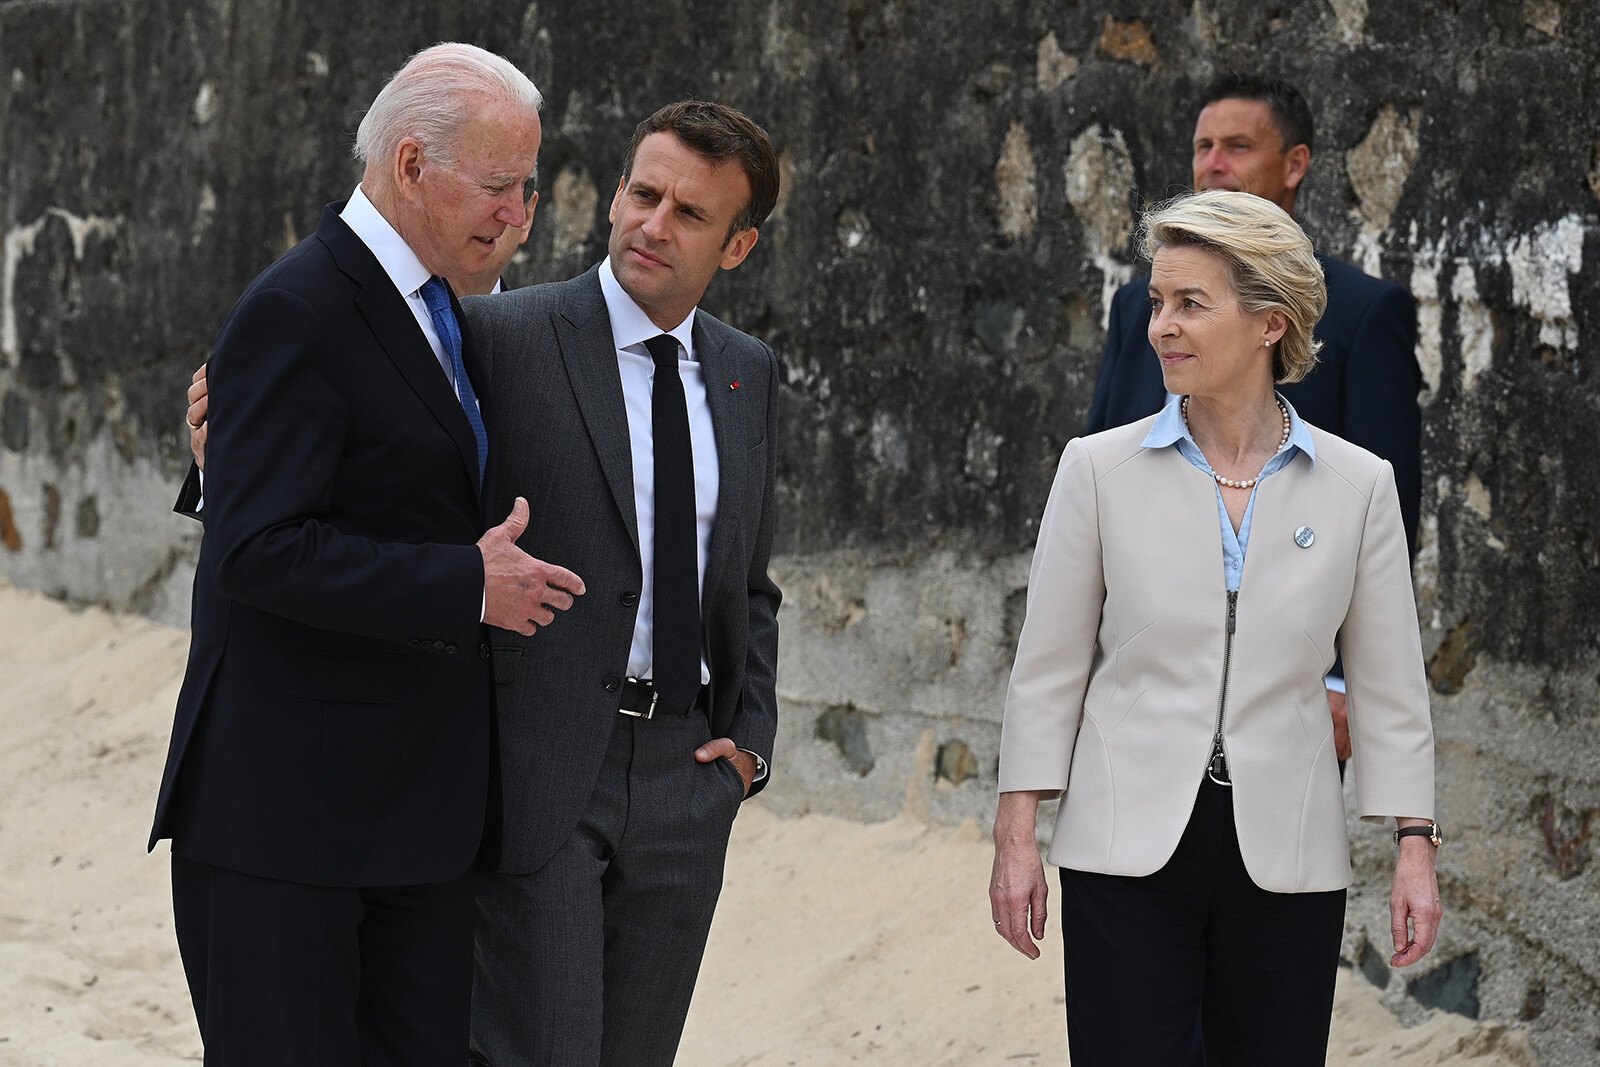 <i>Leon Neal/Getty Images</i><br/>When French officials erupted in anger after being left out of a US-led security pact with Australia and the UK